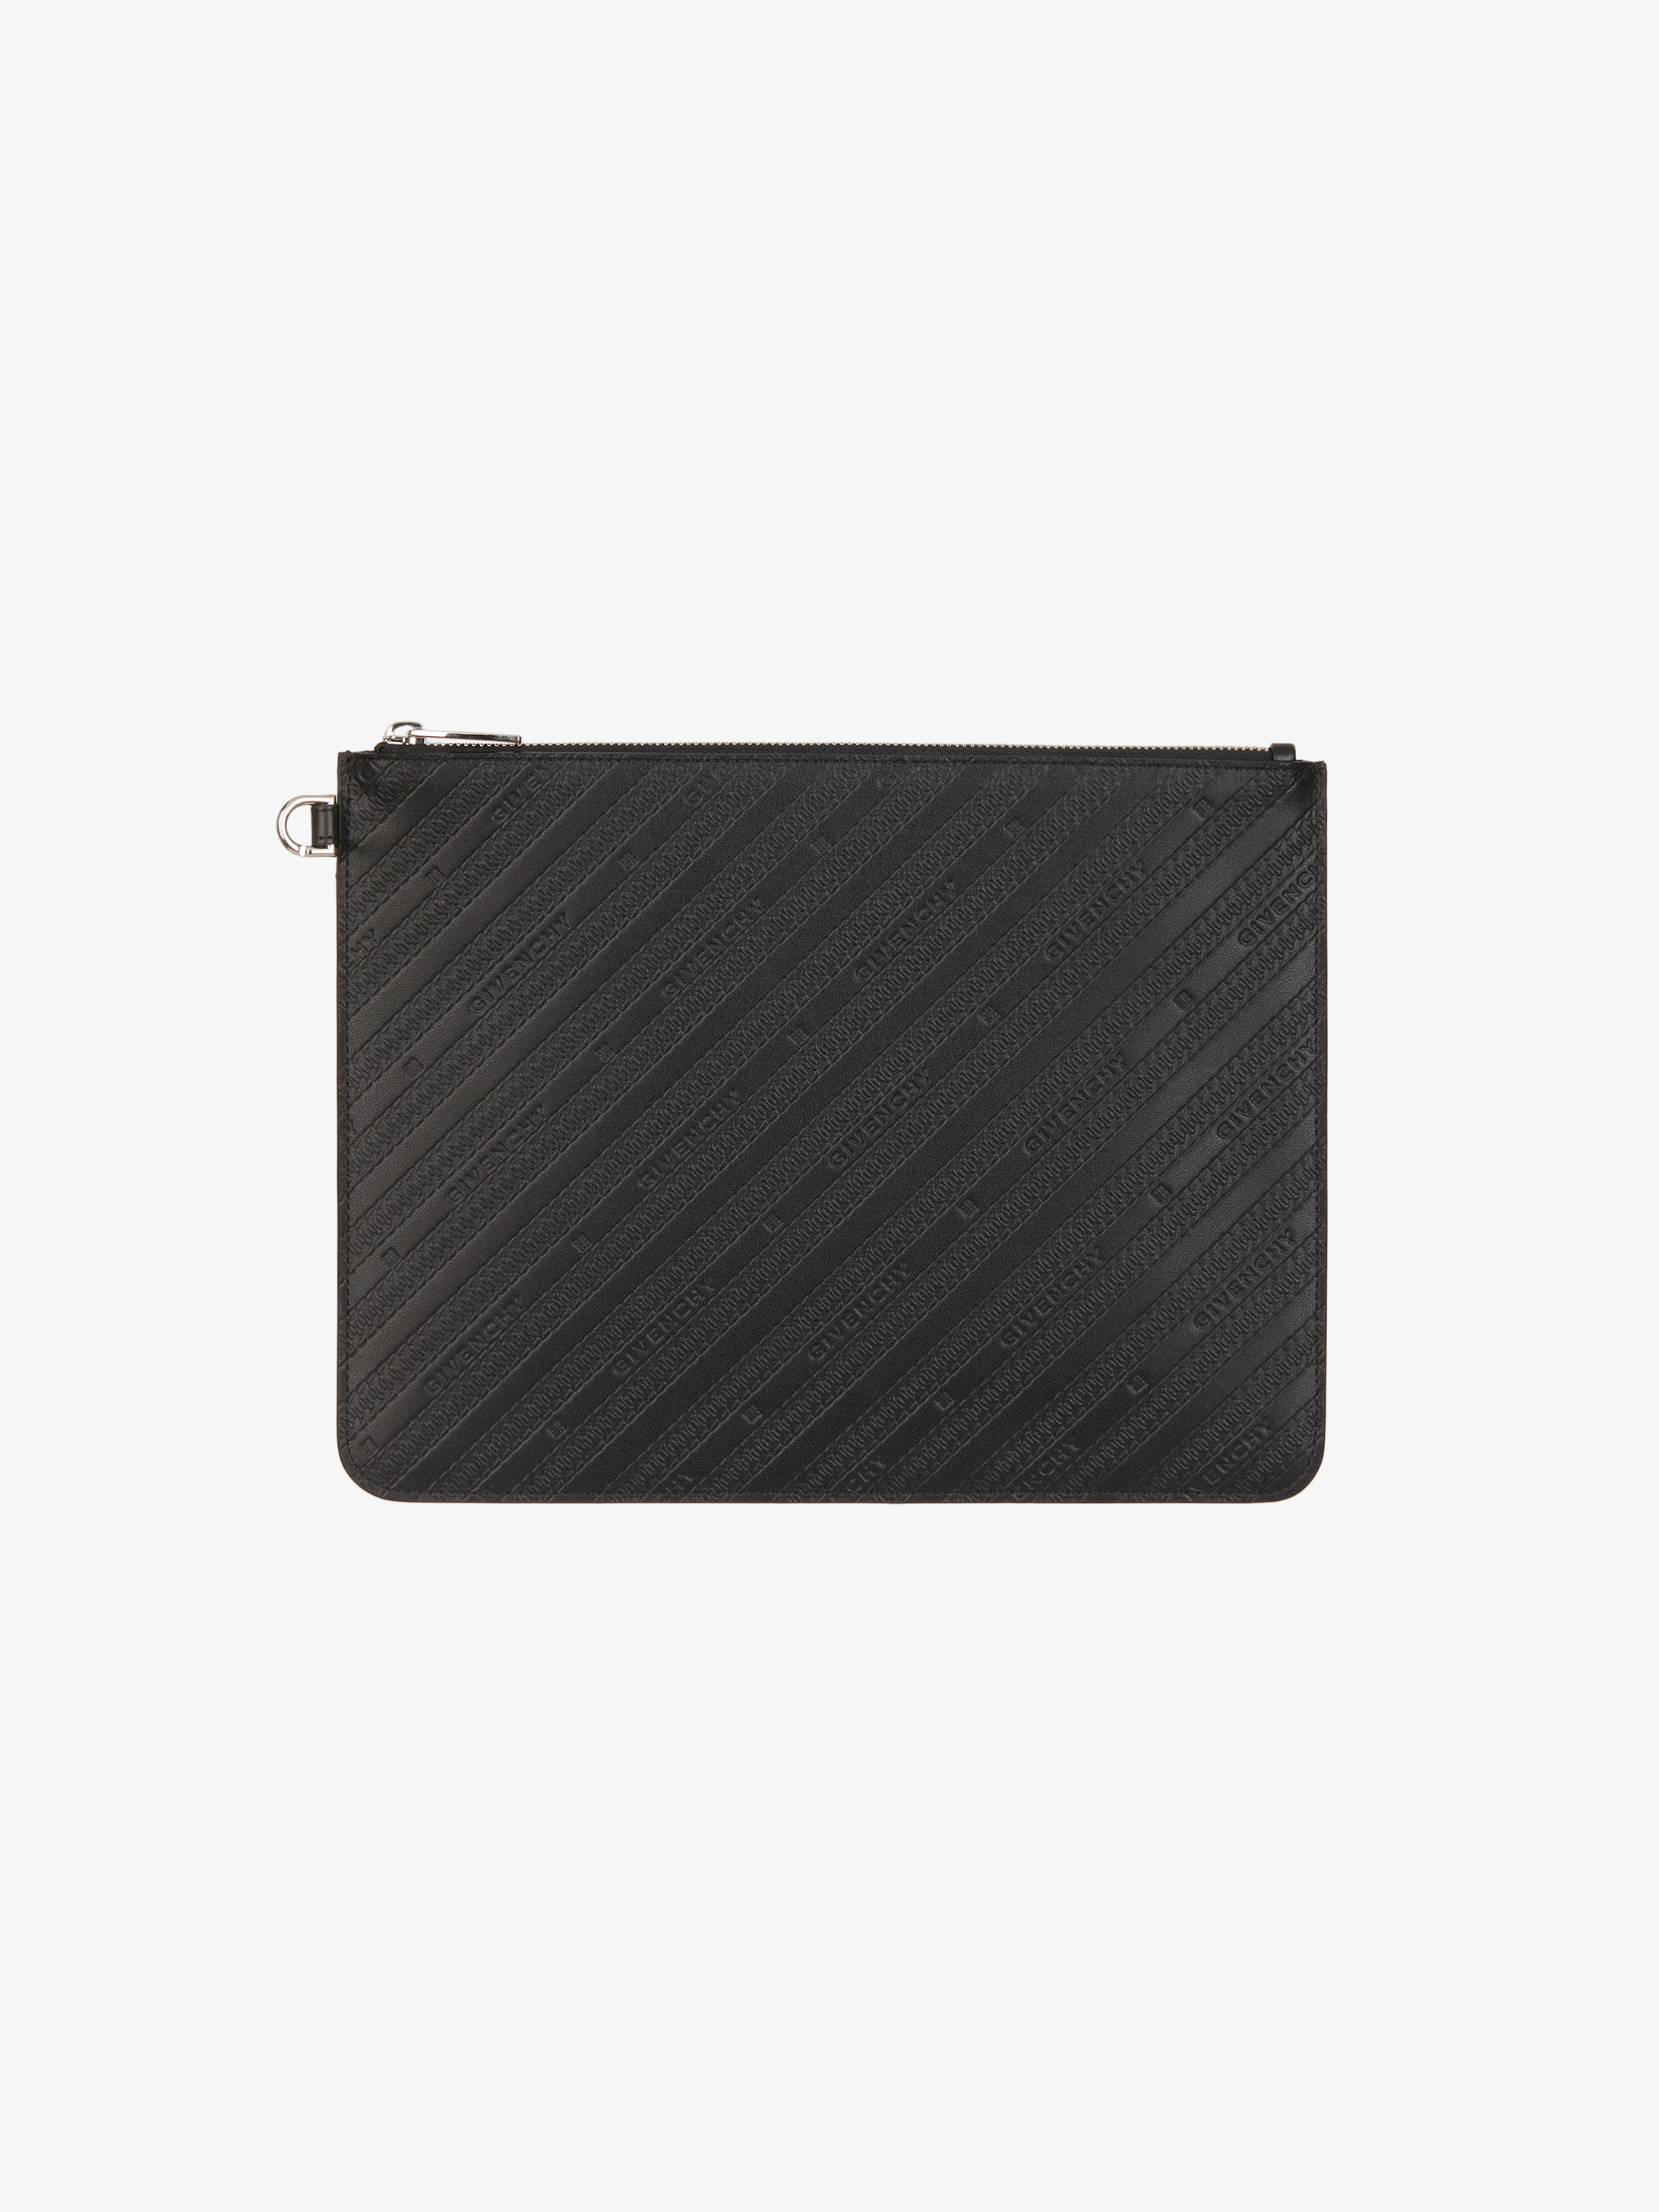 GIVENCHY large pouch in leather